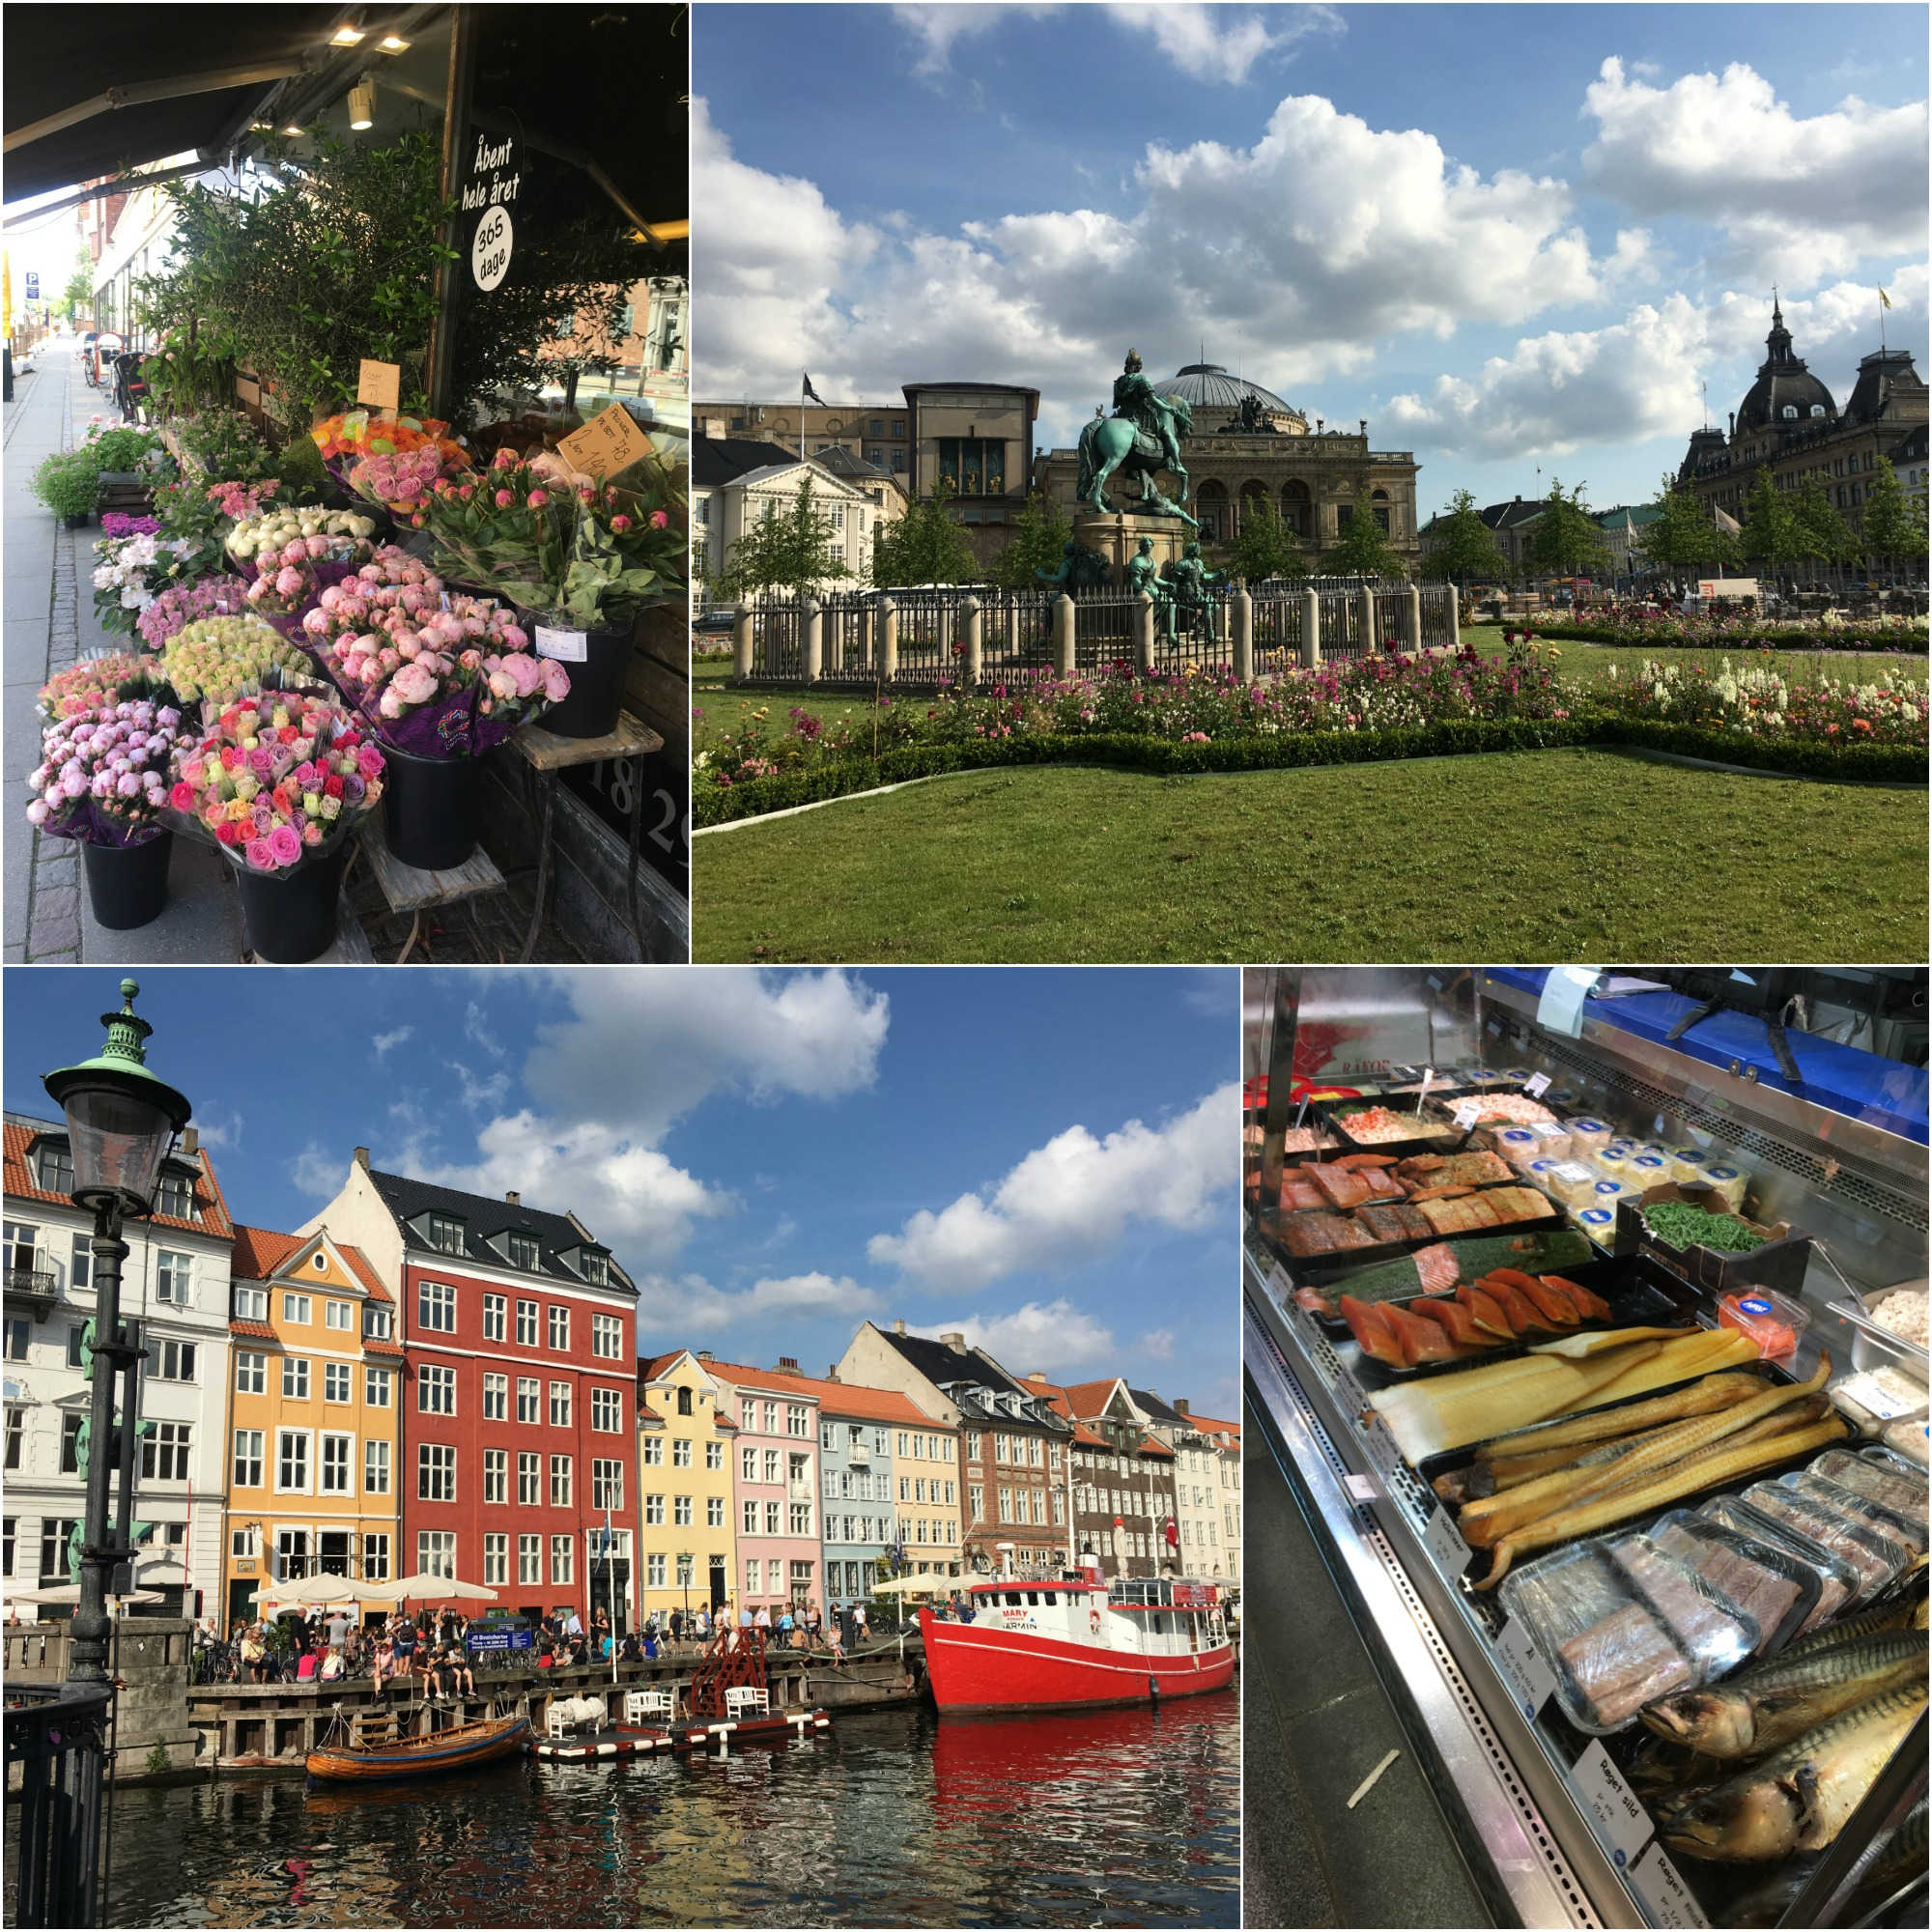 Moments from Copenhagen: flowers, colorful houses, and lots of smoked fish. Not too shabby!